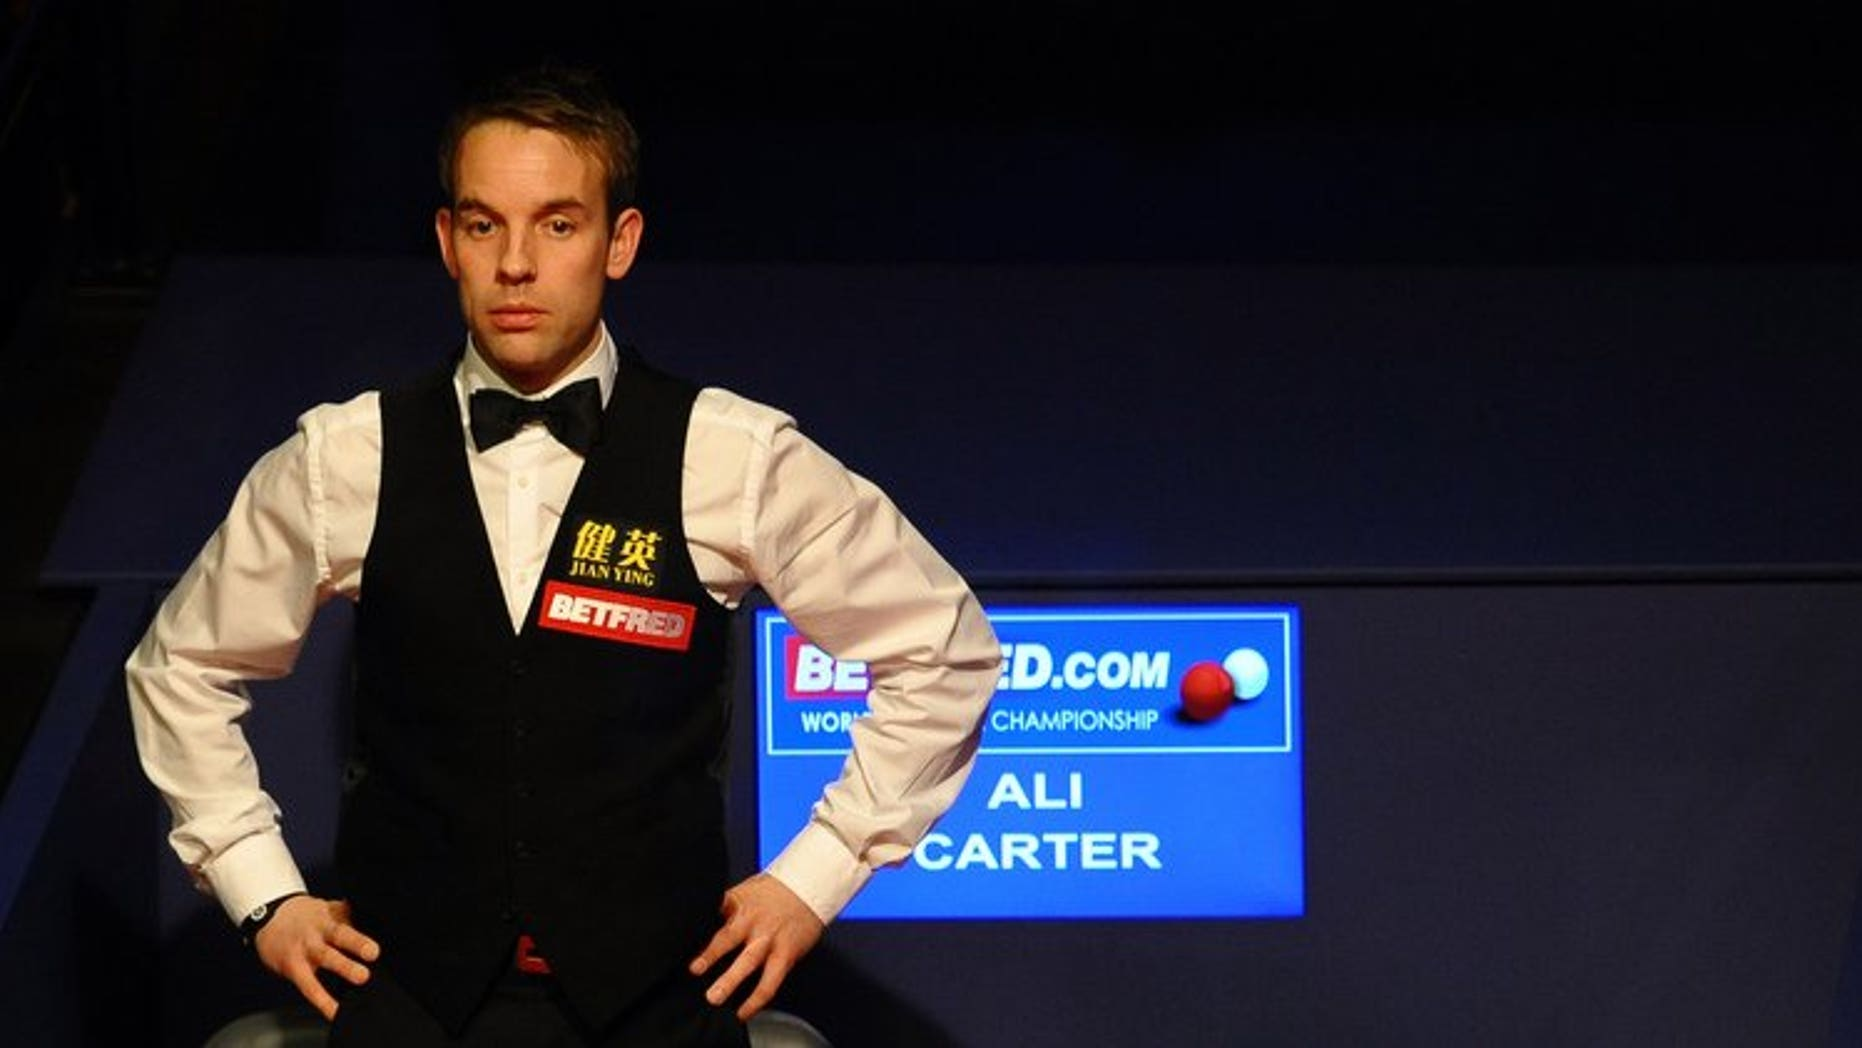 Ali Carter of England watches on May 7, 2012 during the third session of the World Championship Snooker final at the Crucible Theater in Sheffield, England. Carter will return to action at the Shanghai Masters after being given the all-clear from testicular cancer.